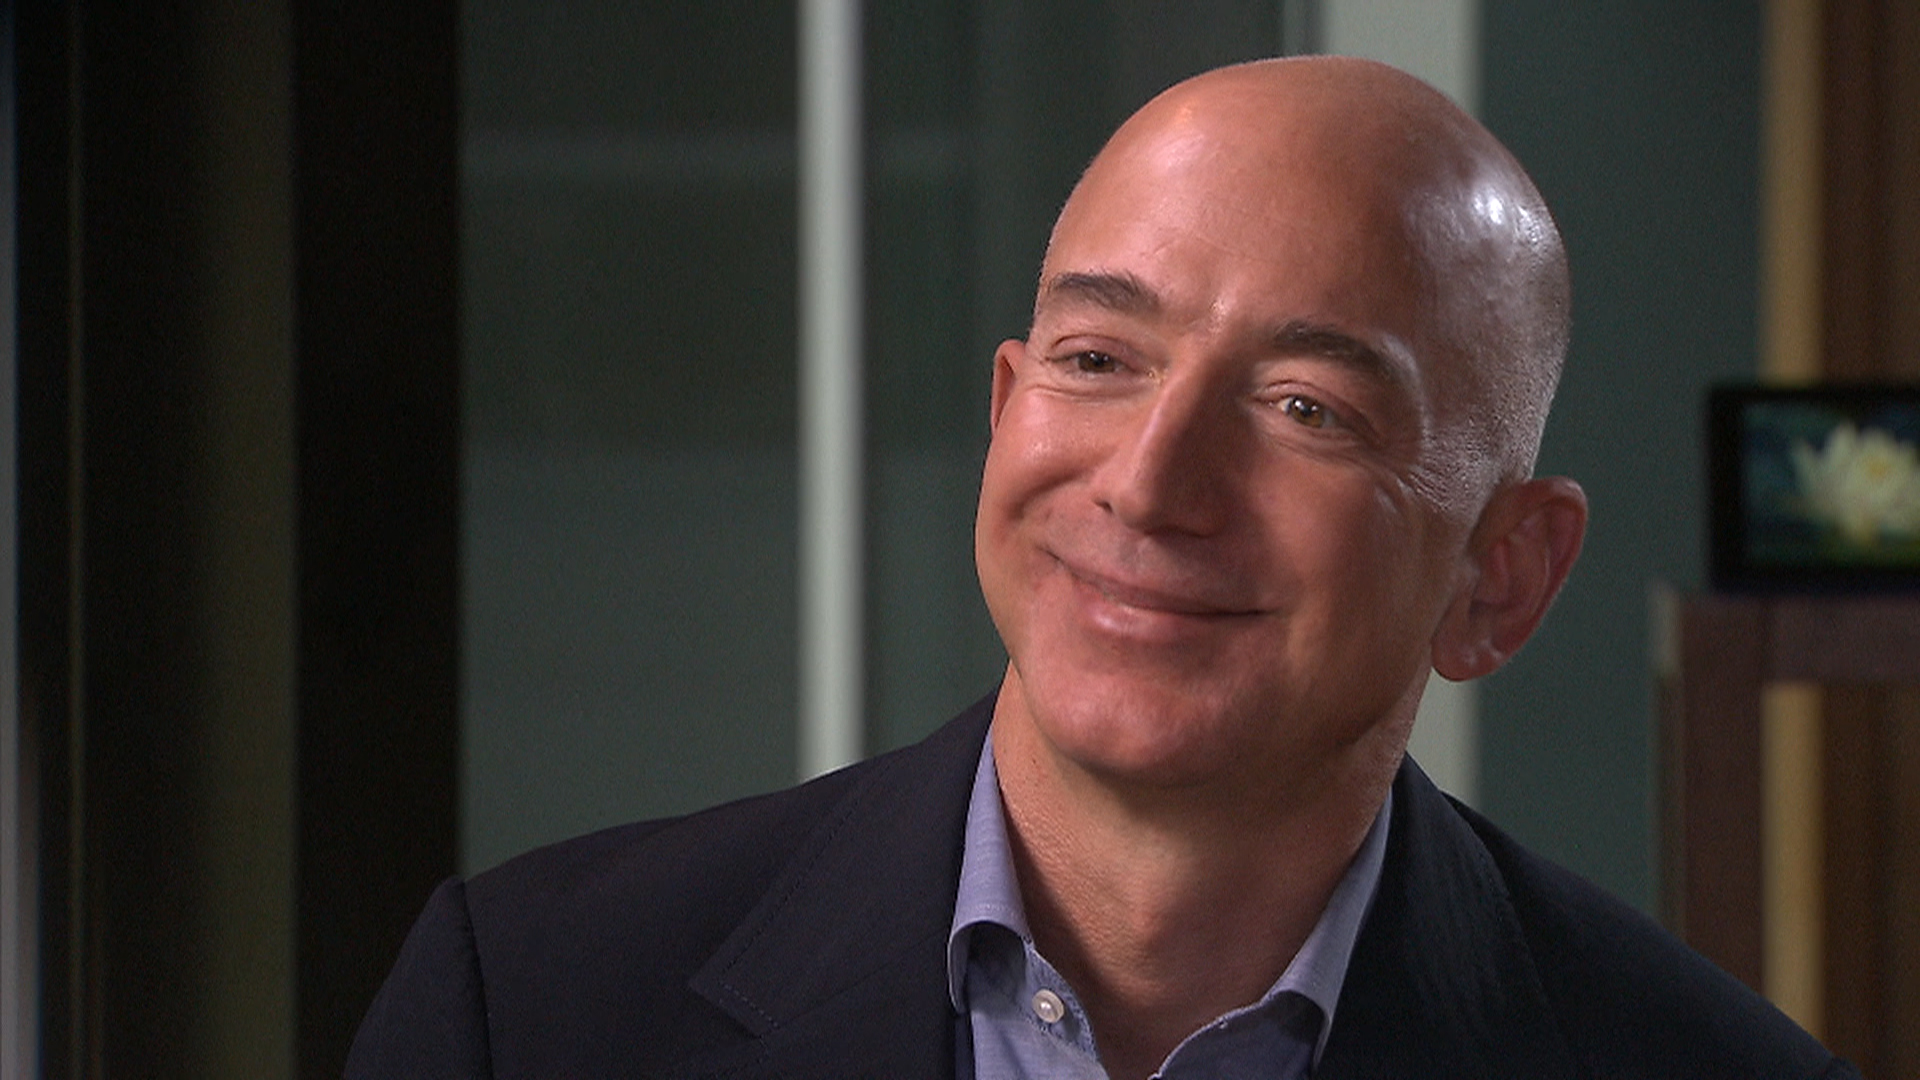 Jeff Bezos is on the brink of becoming the worlds richest man Along with the Whole Foods acquisition by Amazon see where he and his companies have invested